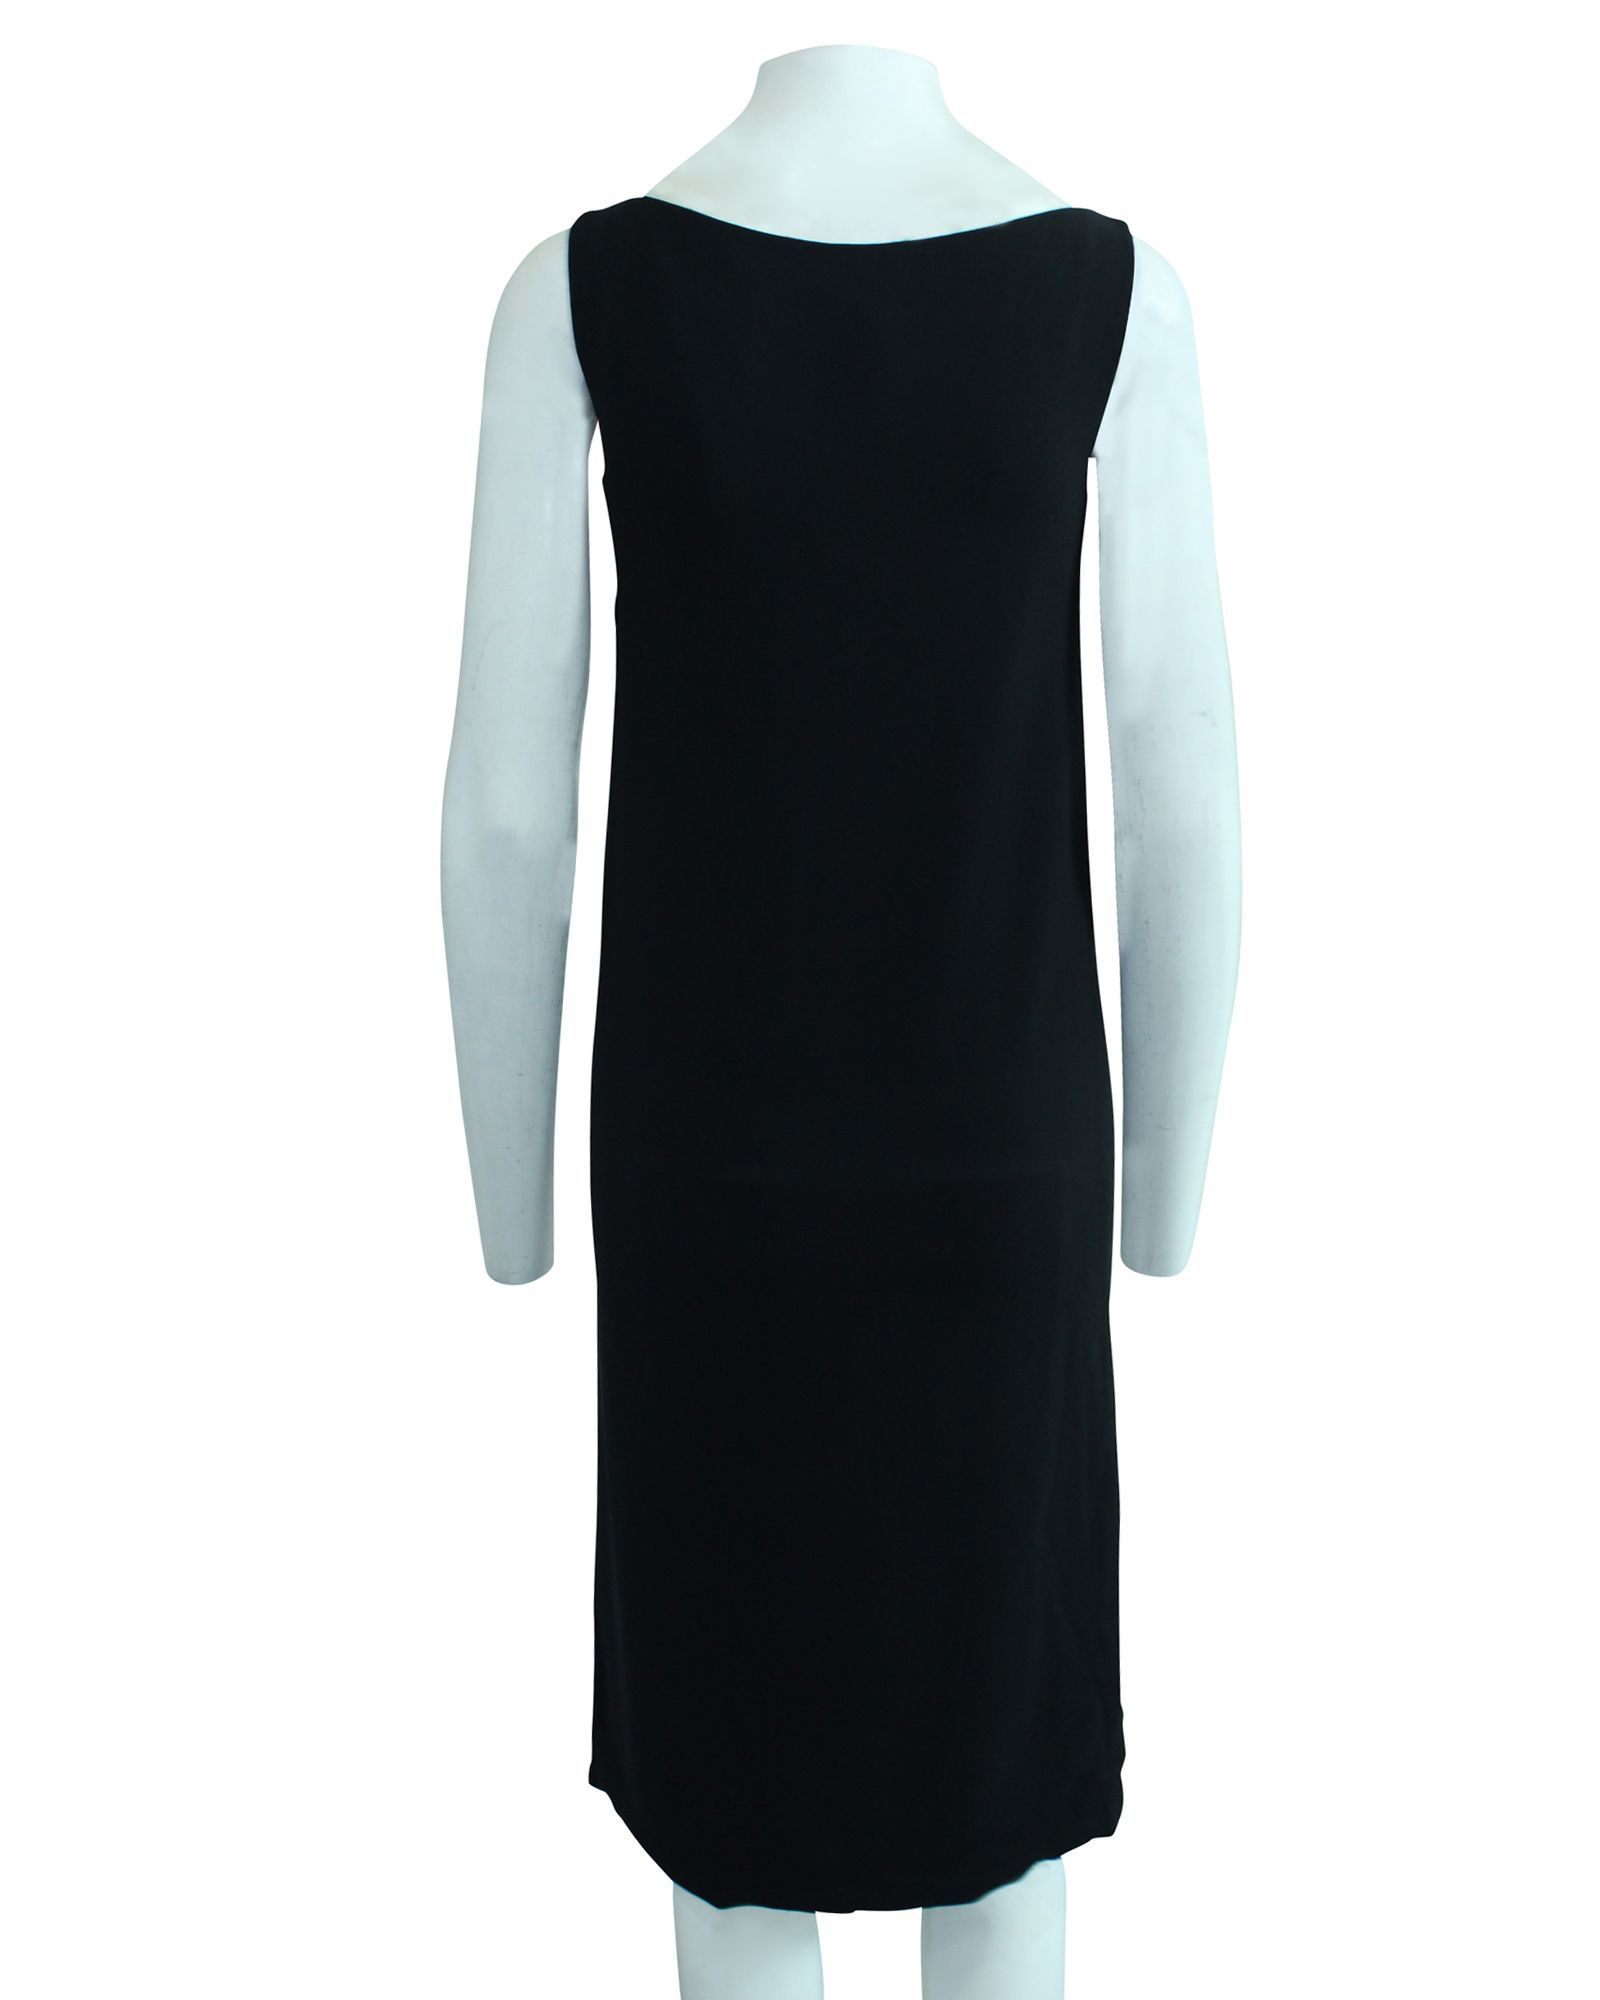 Hermès Black Shift Dress -Pre Owned Condition Very Good